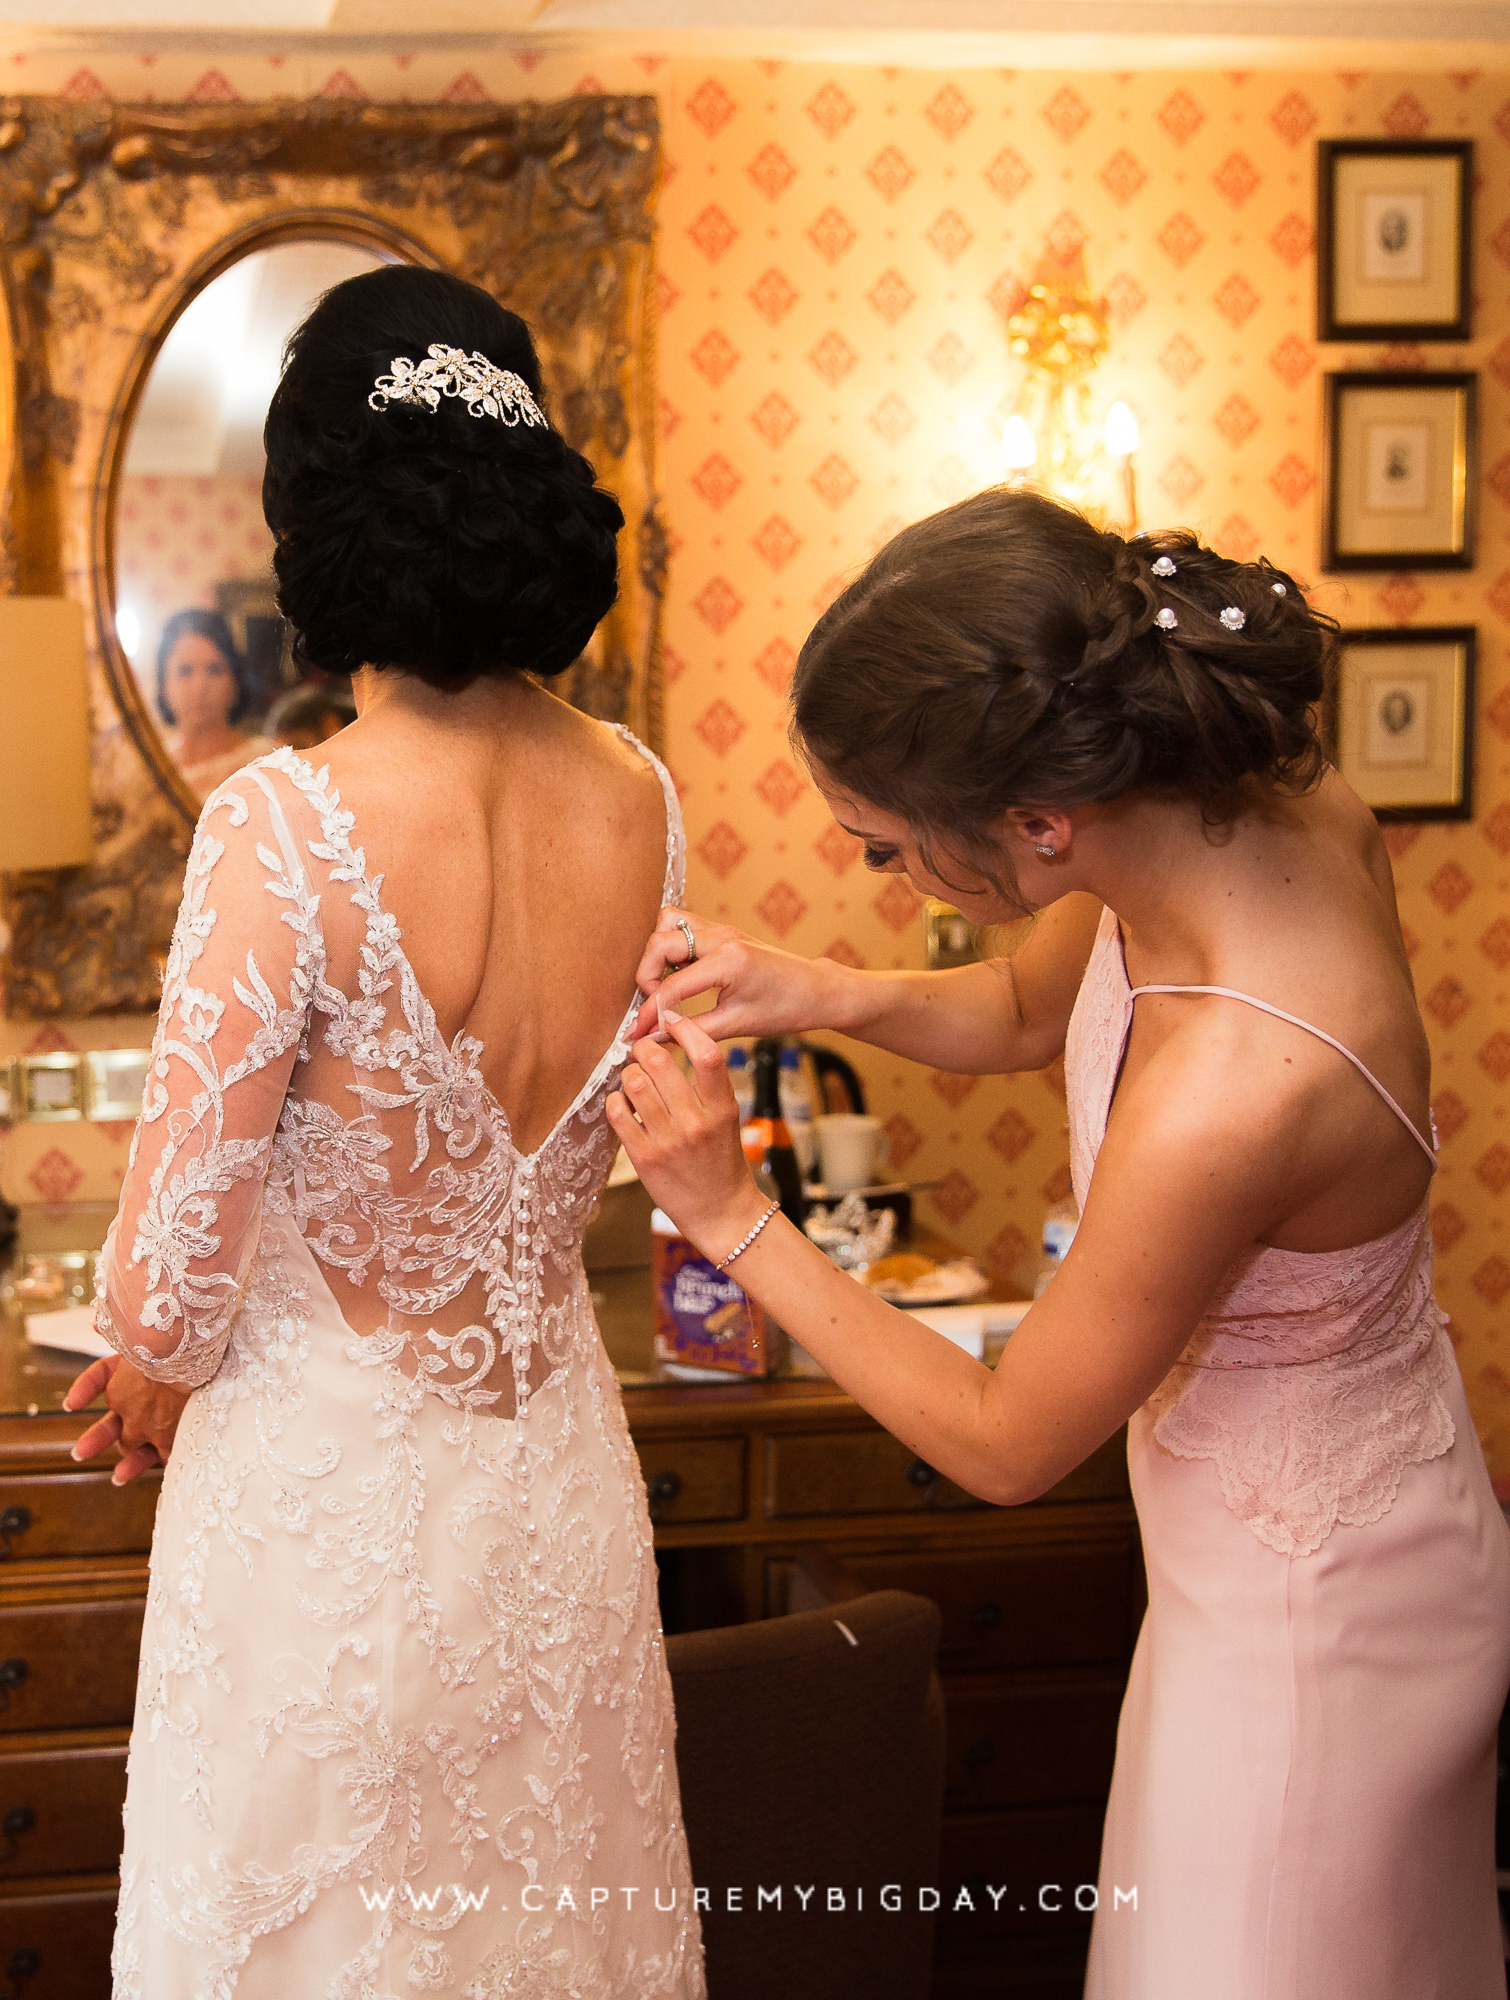 Bridesmaid fixing brides dress